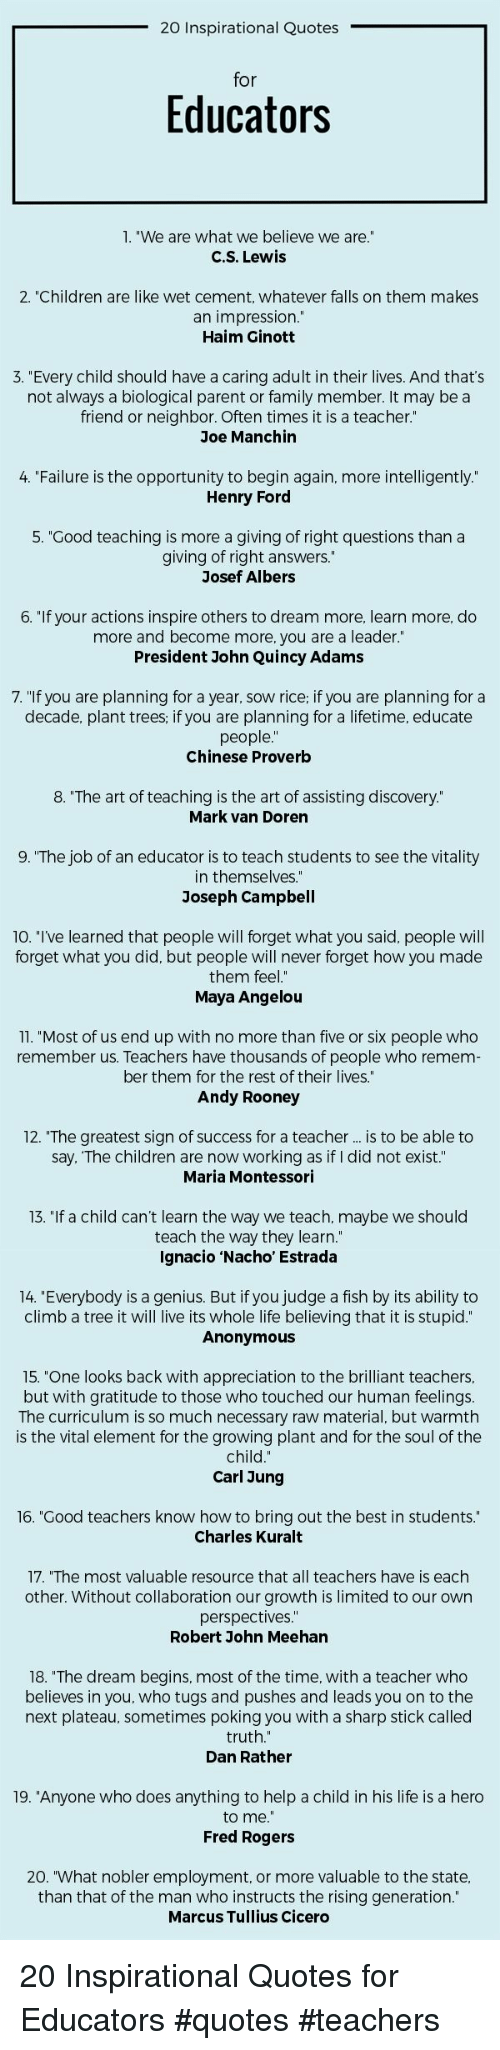 20 Inspirational Quotes Educators 1 We Are What We Believe We Are CS Lewis 2 Children Are Like Wet Cement Whatever Falls on Them Makes an Impression Haim Ginott 3 Every Child Should Have a Caring Adult in Their Lives and That's Not Always a Biological Parent or Family Member It May Be a Friend or Neighbor Often Times It Is a Teacher Joe Manchin 4 Failure Is the Opportunity to Begin Again More Intelligently Henry Ford 5 Good Teaching Is More a Giving of Right Questions Than a Giving of Right Answers Josef Albers 6 if Your Actions Inspire Others to Dream More Learn More Do More and Become More You Are a Leader President John Quincy Adams 7 if You Are Planning for a Year Sow Rice if You Are Planning for a Decade Plant Trees if You Are Planning for a Lifetime Educate People Chinese Proverb 8 the Art of Teaching Is the Art of Assisting Discovery Mark Van Doren 9 the Job of an Educator Is to Teach Students to See the Vitality in Themselves Joseph Campbell 10 Ive Learned That People Will Forget What You Said People Will Forget What You Did but People Will Never Forget How You Made Them Feel Maya Angelou 11 'Most of Us End Up With No More Than Five or Six People Who Remember Us Teachers Have Thousands of People Who Remem Ber Them for the Rest of Their Lives Andy Rooney 12 the Greatest Sign of Success for a Teacher Is to Be Able to Say the Children Are Now Working as if I Did Not Exist Maria Montessori 13 if a Child Can't Learn the Way We Teach Maybe We Should Teach the Way They Learn Ignacio 'Nacho' Estrada 14 Everybody Is a Genius but if You Judge a Fish by Its Ability to Climb a Tree It Will Live Its Whole Life Believing That It Is Stupid Anonymous 15 'One Looks Back With Appreciation to the Brilliant Teachers but With Gratitude to Those Who Touched Our Human Feelings the Curriculum Is So Much Necessary Raw Material but Warmth Is the Vital Element for the Growing Plant and for the Soul of the Child Carl Jung 16 Good Teachers Know How to Bring Out the Best in Students Char